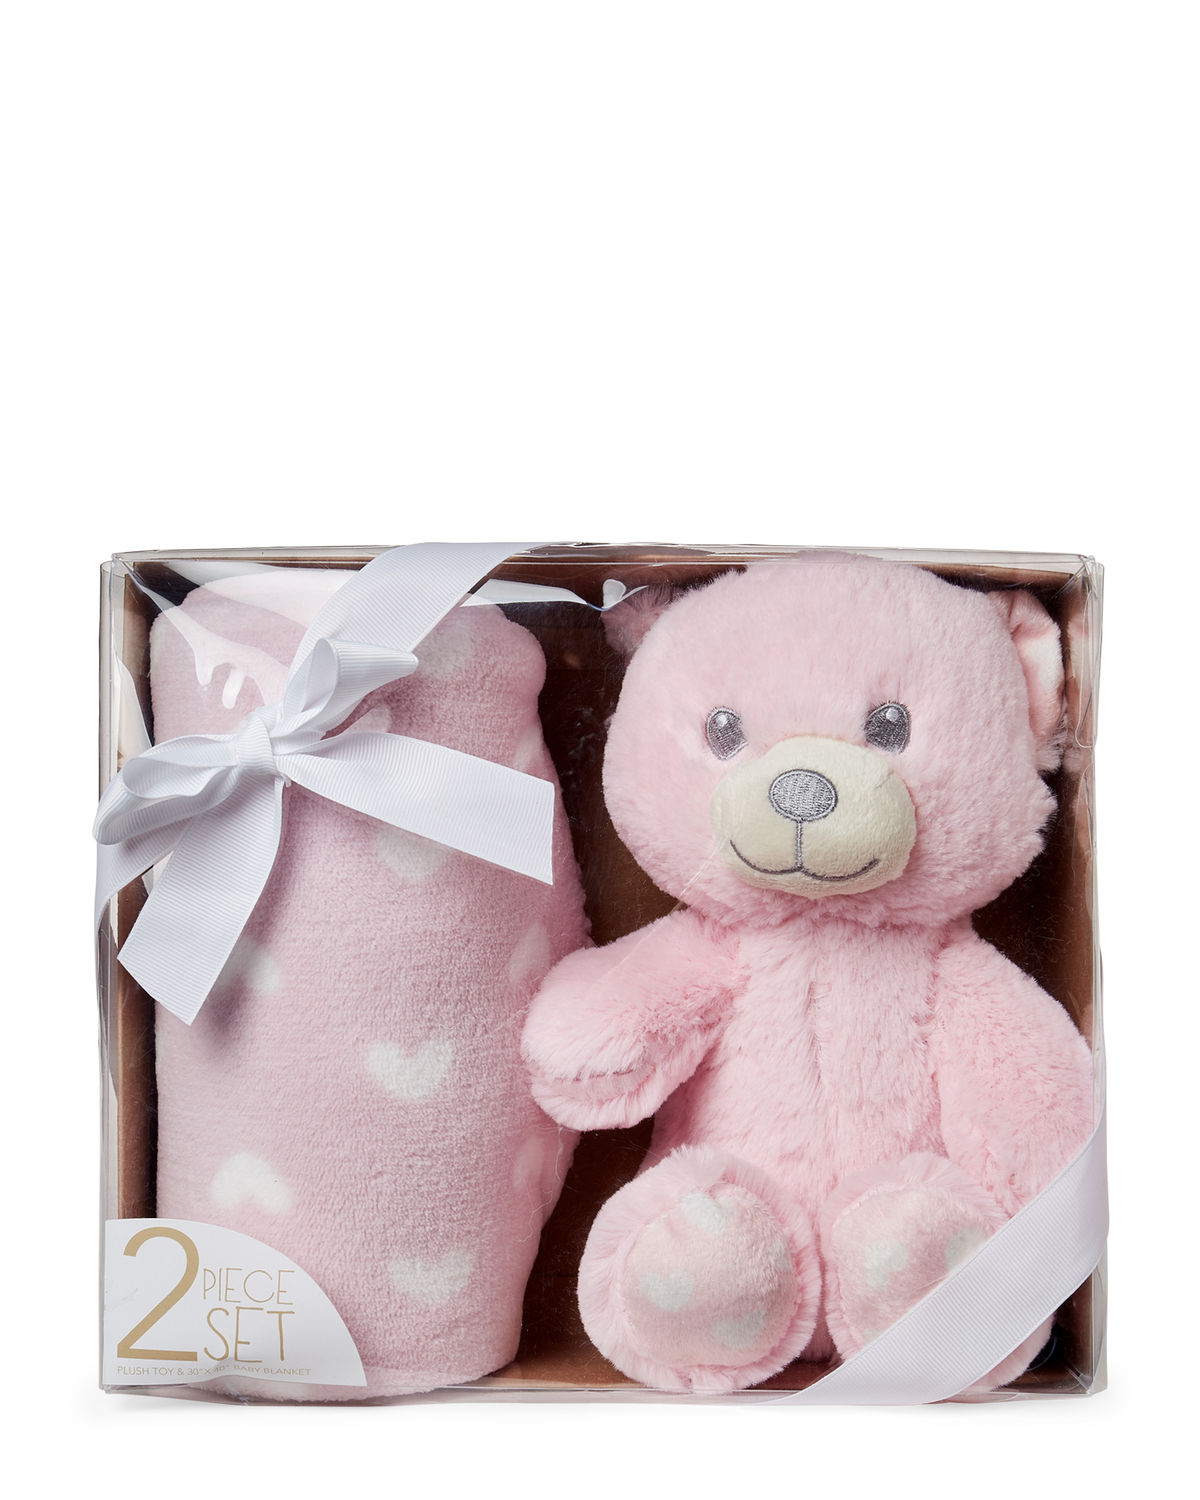 Pink Bear Plush Toy & Baby Blanket Gift Set